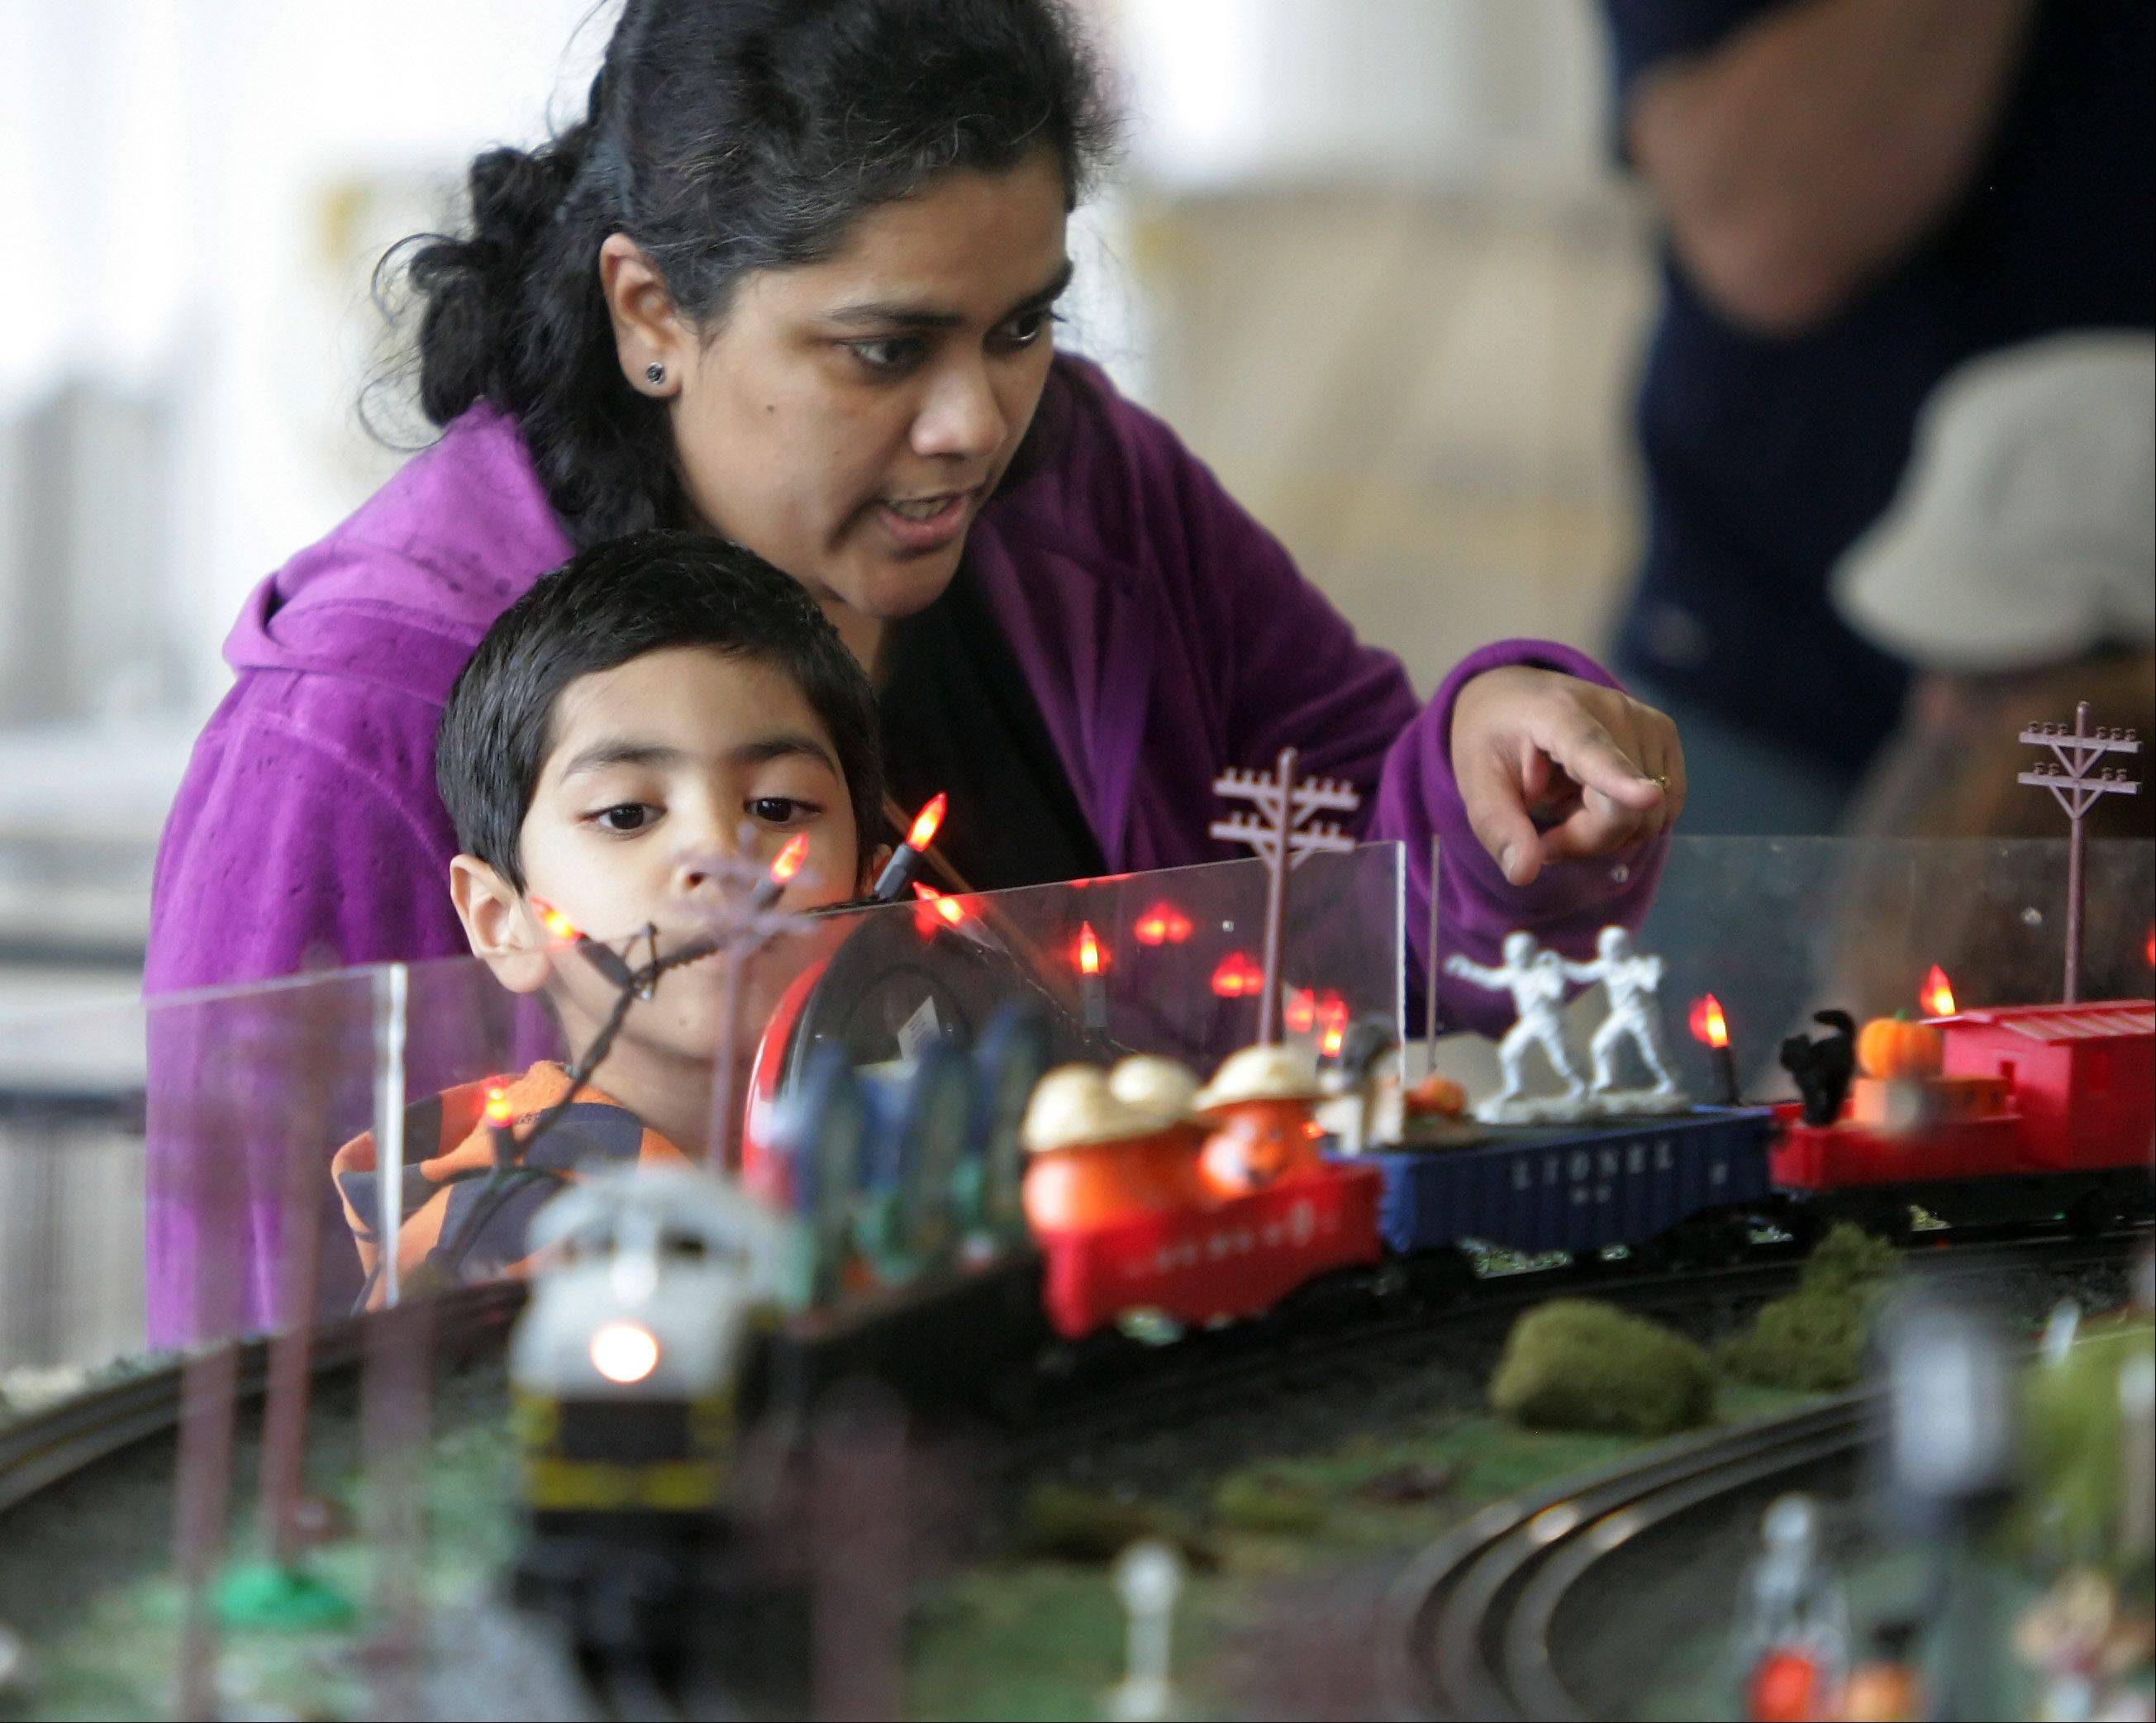 Deeoti Mishrikotkar, of Mundelein, brings her son, Neil, 4, to see the Halloween model train display by the North Central O Gaugers Model Railroad Club Sunday at the Fremont Public Library in Mundelein. The display featured giant spiders, space aliens, ghouls, mummies and witches, and lots of trains.